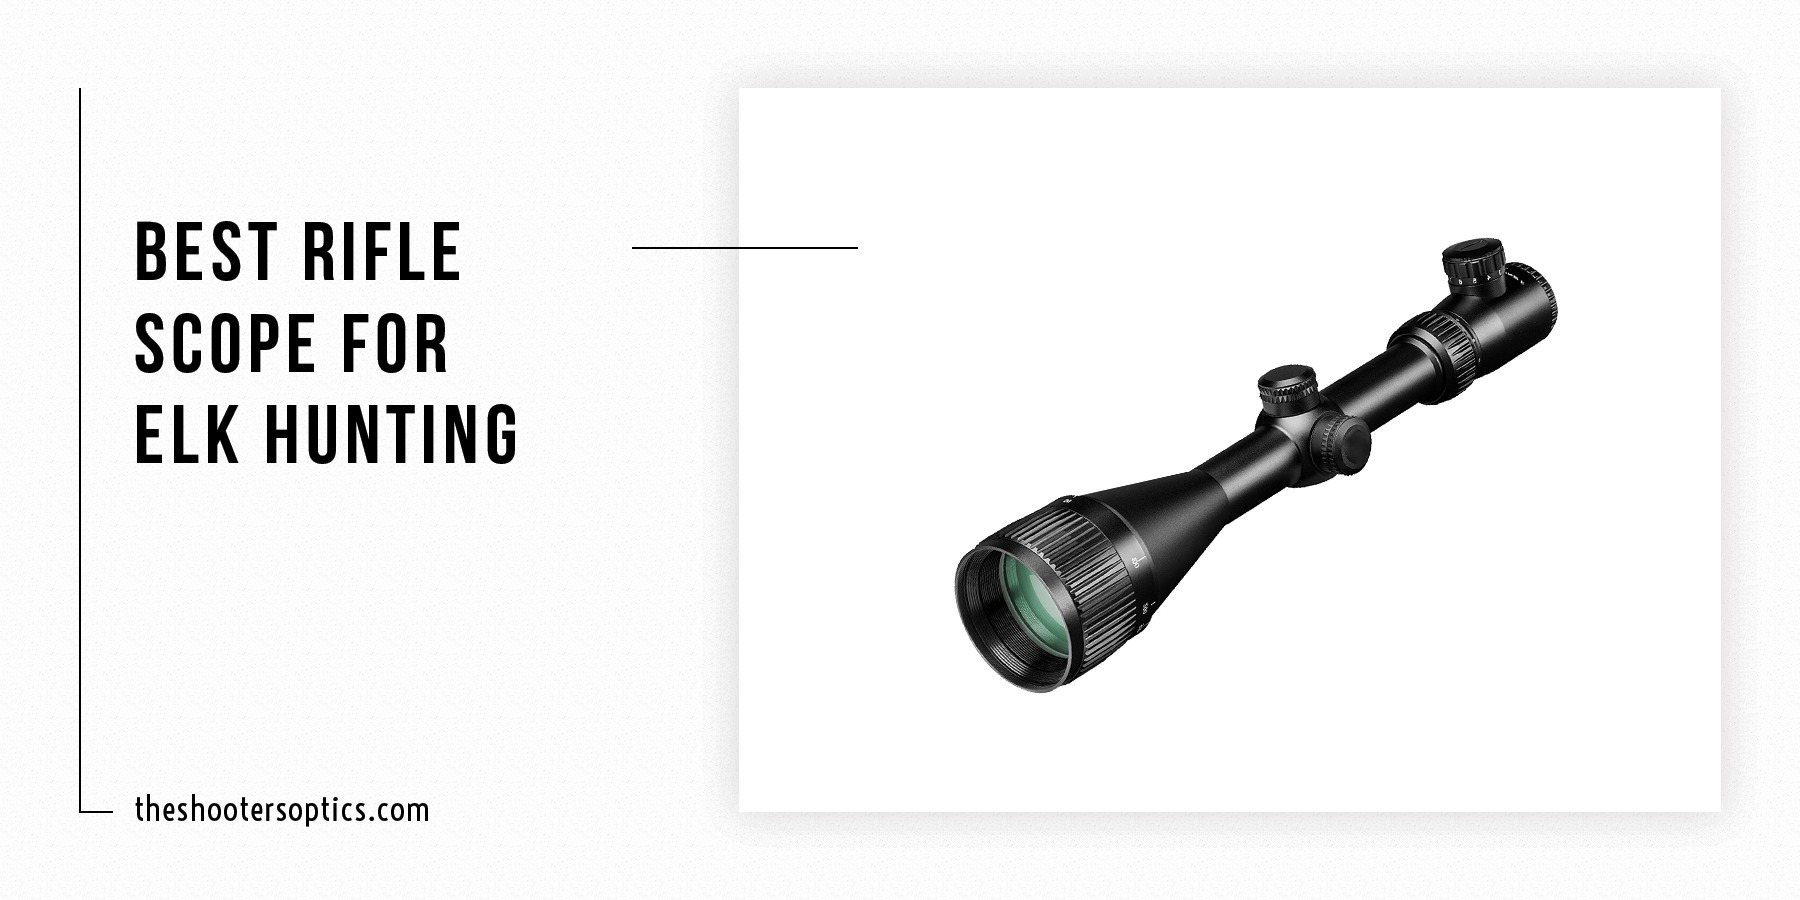 Top 5 Best Rifle Scope For Elk Hunting